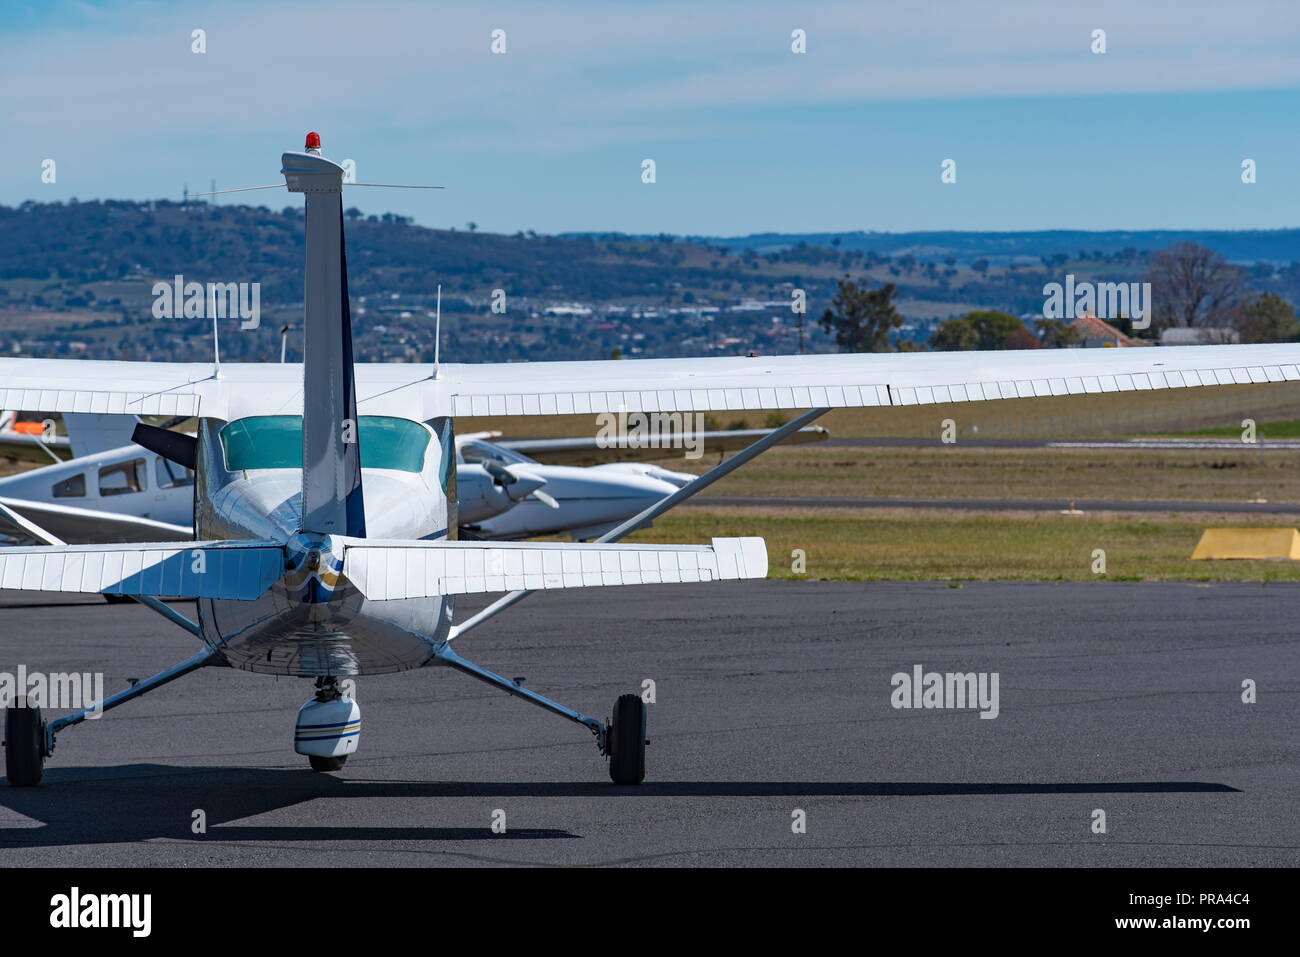 Bathurst Airport opened in 1942 taking excess aircraft from Richmond Air Force Base, today it is used by Regional Air Express and local privateers - Stock Image